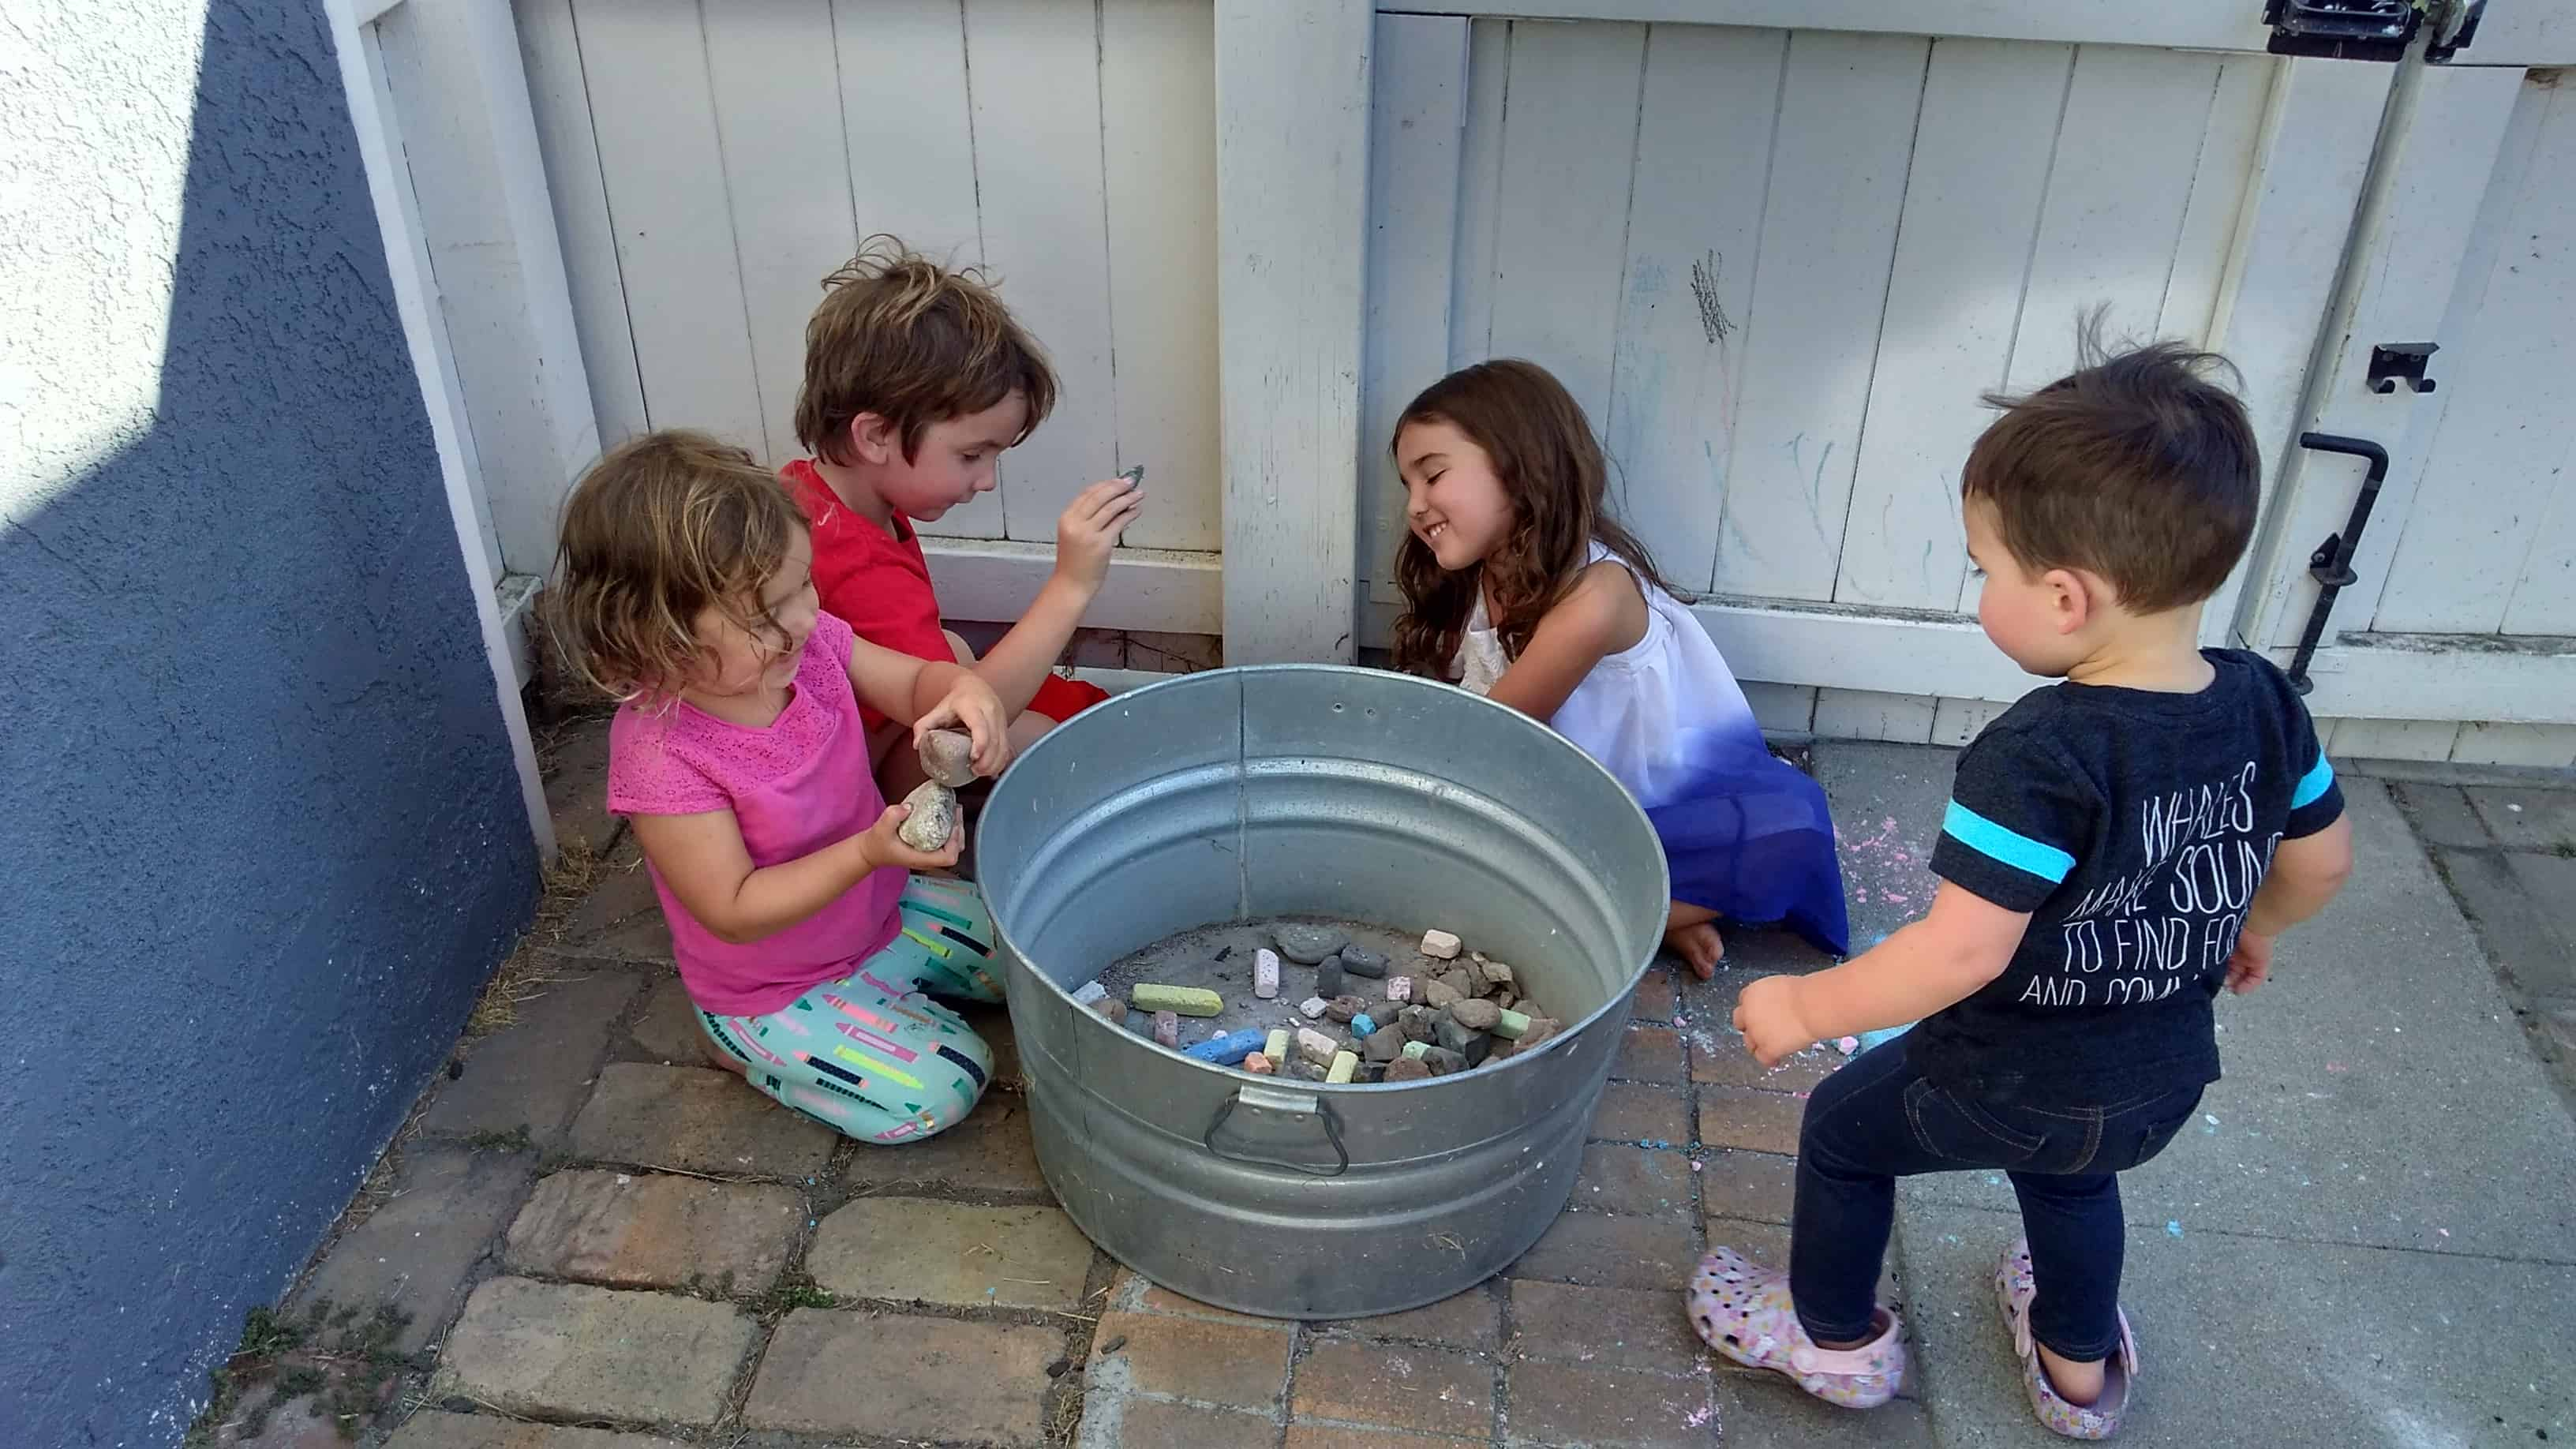 Four children placing rocks in a tin barrel